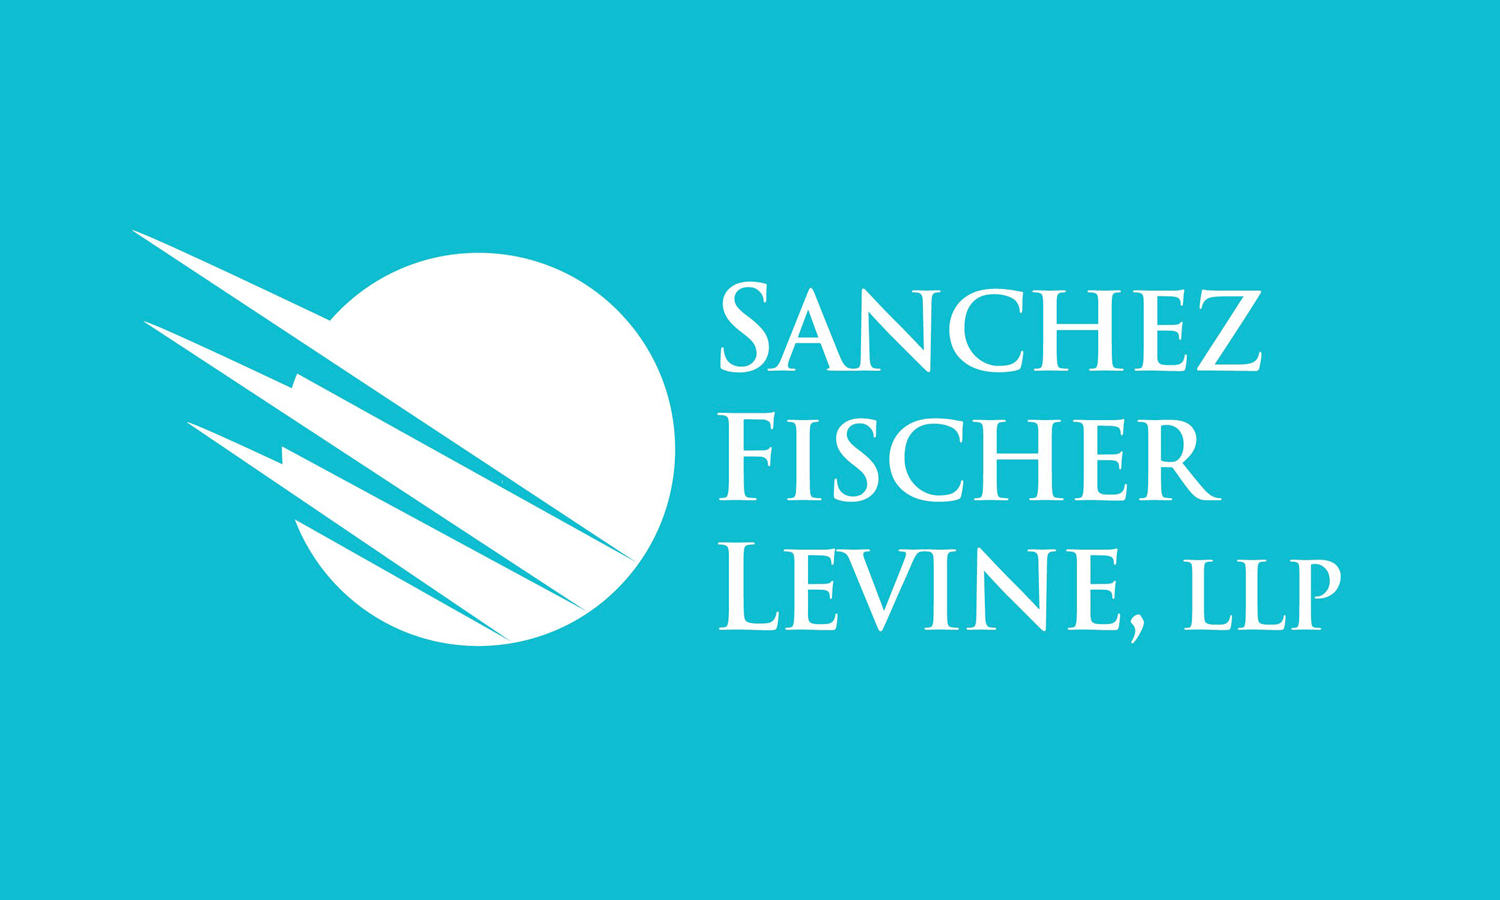 New Website Launch for Sanchez Fischer Levine, LLP